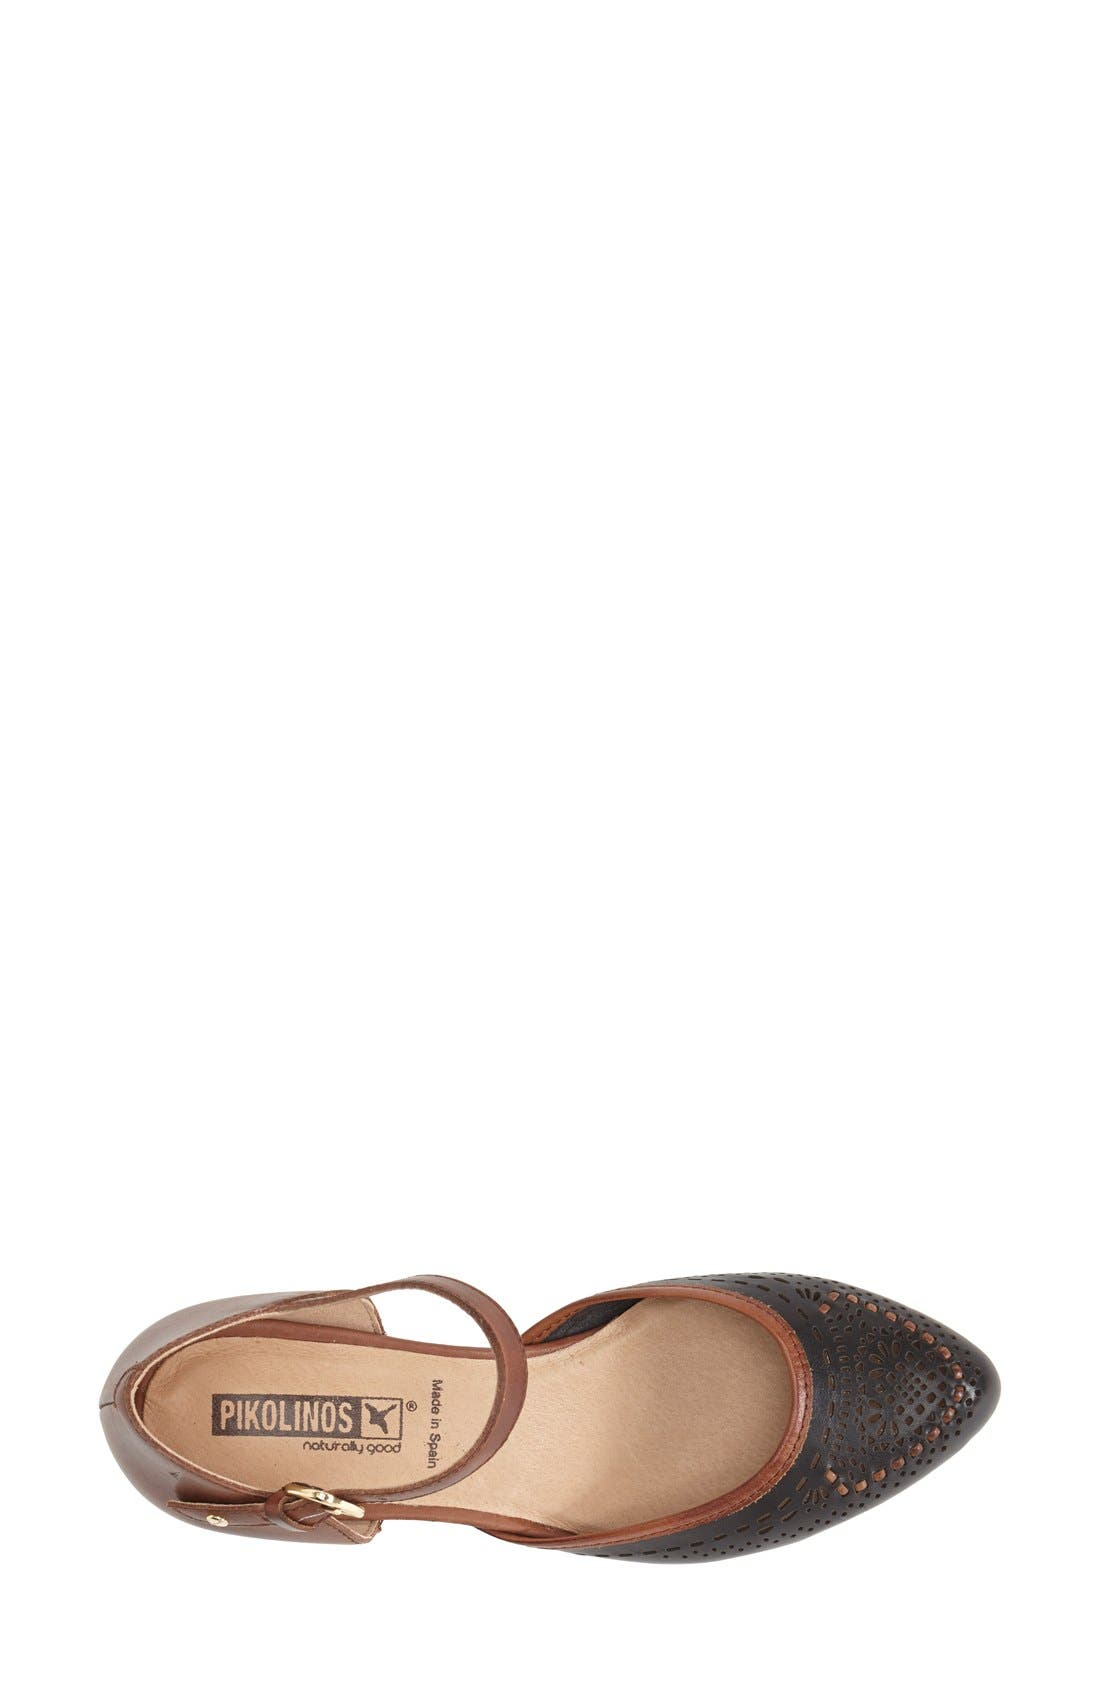 'Elba' Perforated Leather Ankle Strap Sandal,                             Alternate thumbnail 8, color,